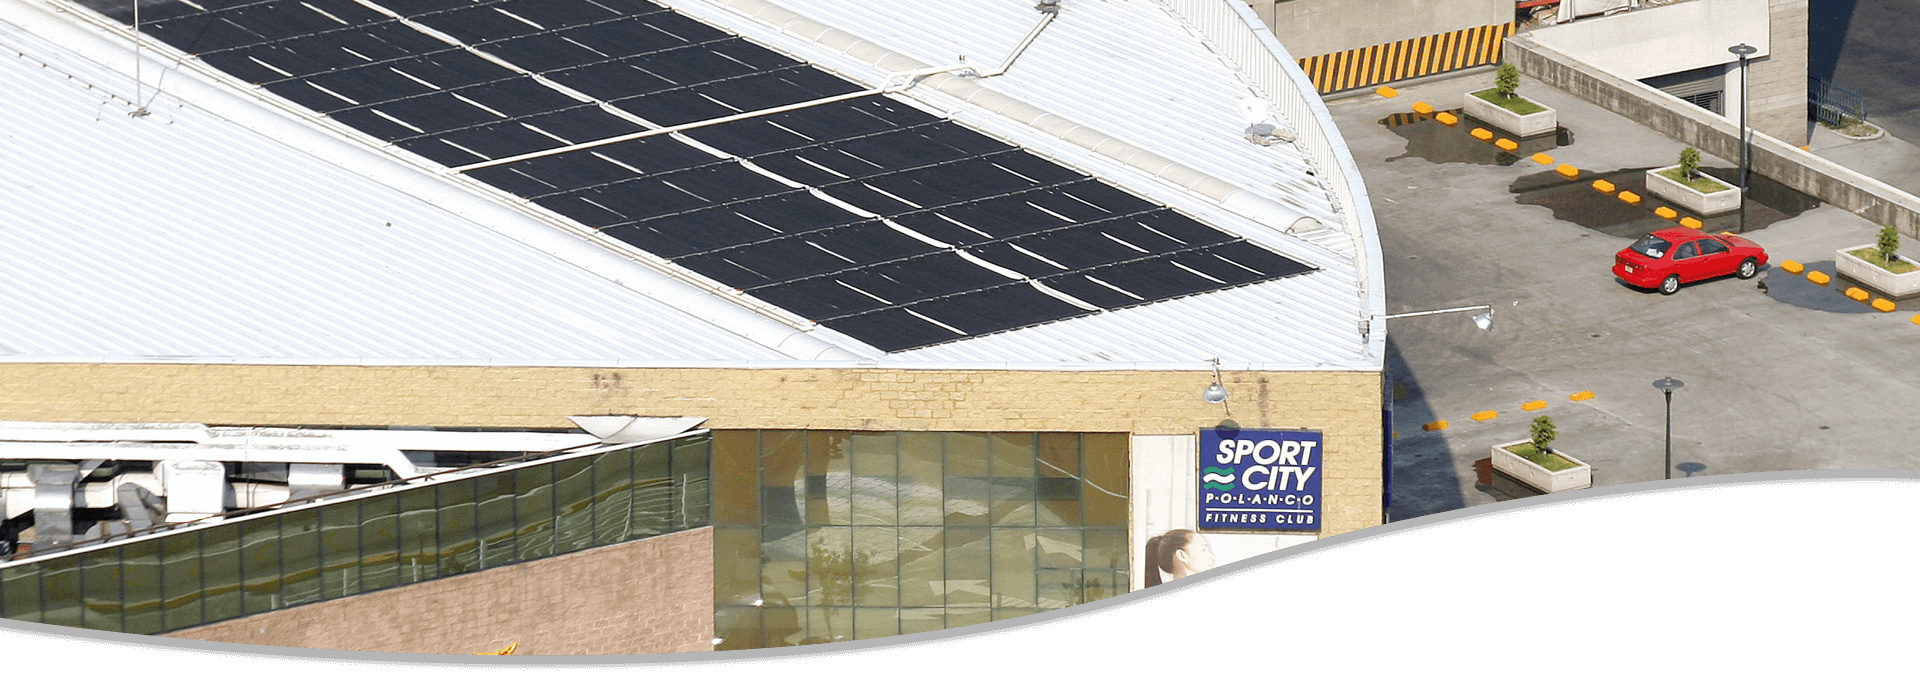 Hot Water Heating Systems For Sport City De Polanco